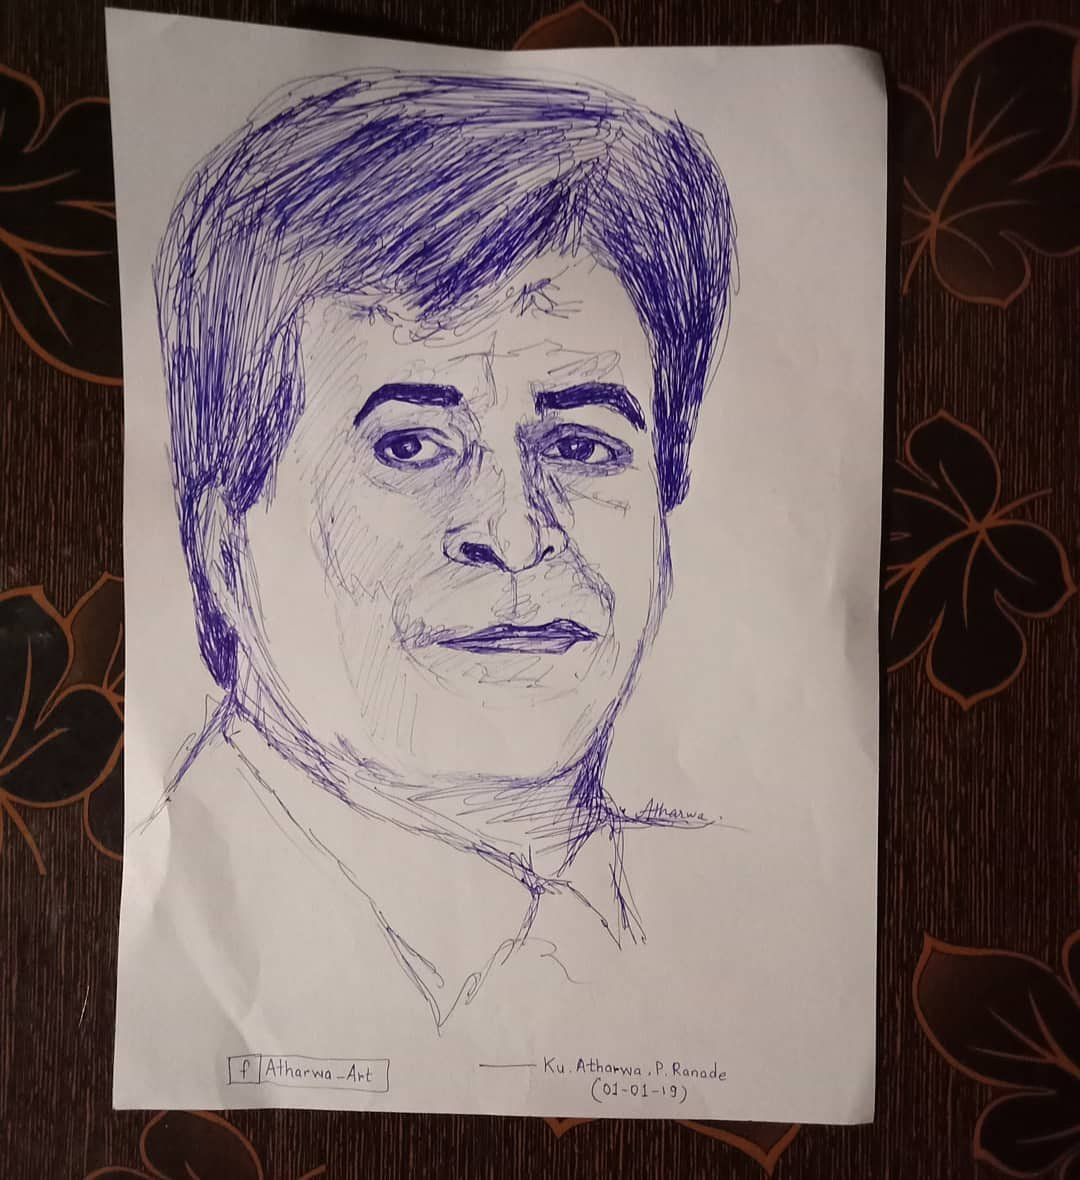 RIP Kader Khan Sir , Legendary Actor of Bollywood and a versatile personality.... Tribute ... A rapid 10 min.  sketch with pen #RIP #KaderKhan #legend #comedy #bollywood #actor #writer #films #movies #bollywoodactor #art #artwork #pendrawing #pensketch #sketches #tribute